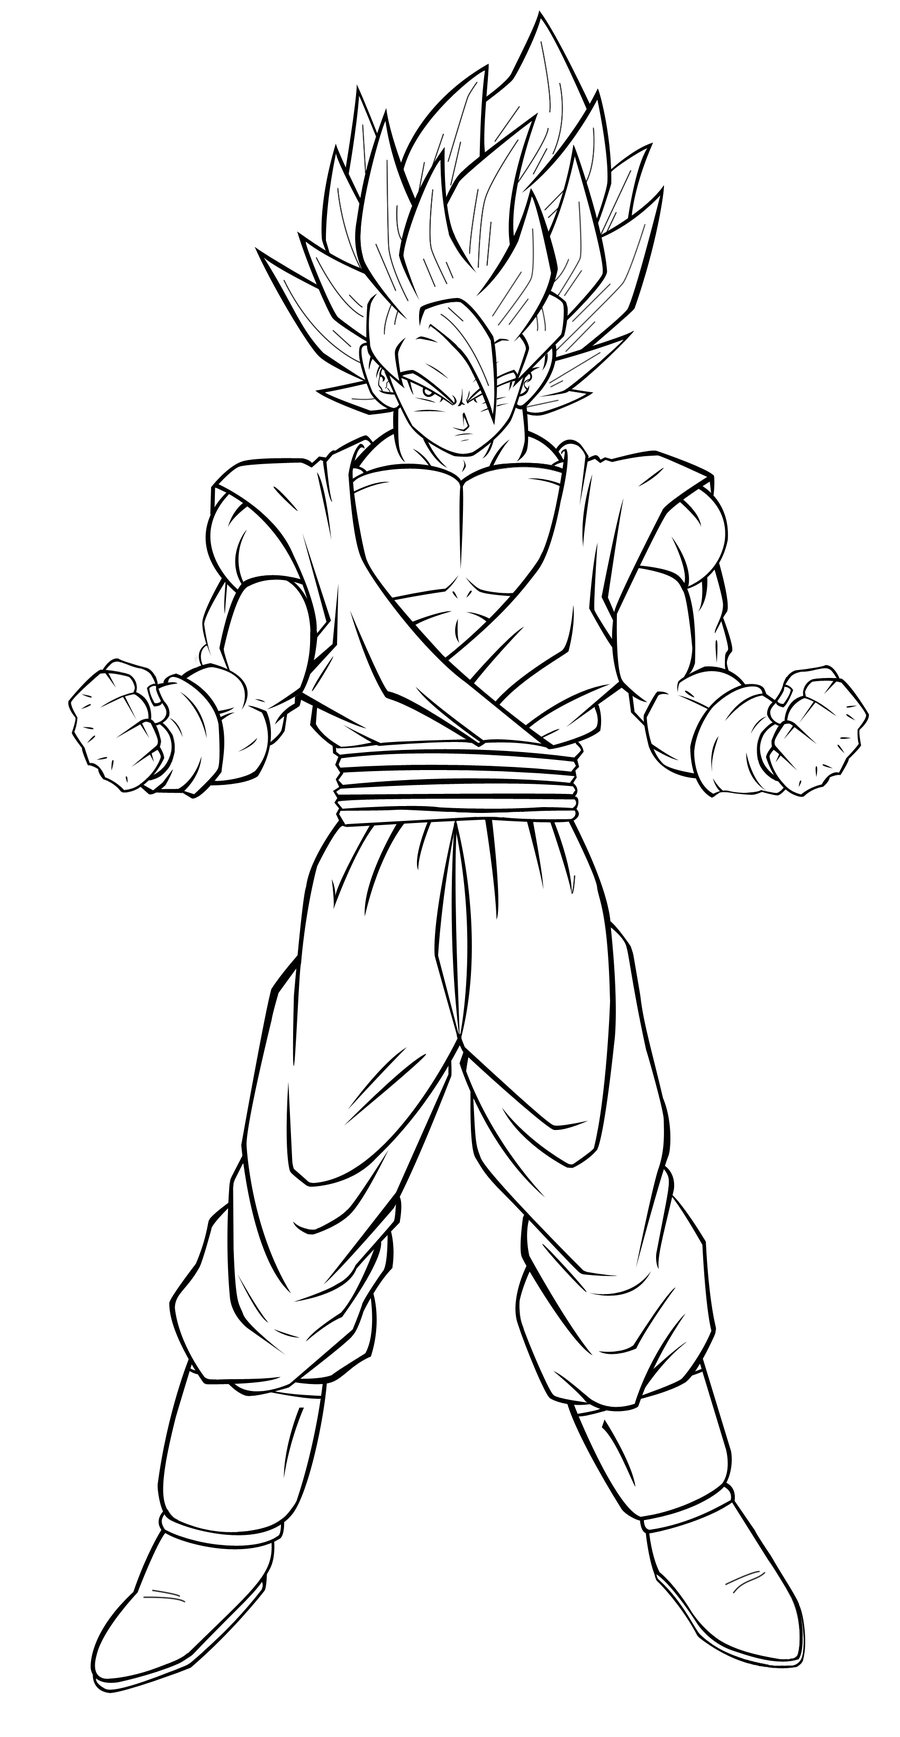 900x1737 Dragon Ball Z Coloring Pages Goku Super Saiyan From Goku Coloring